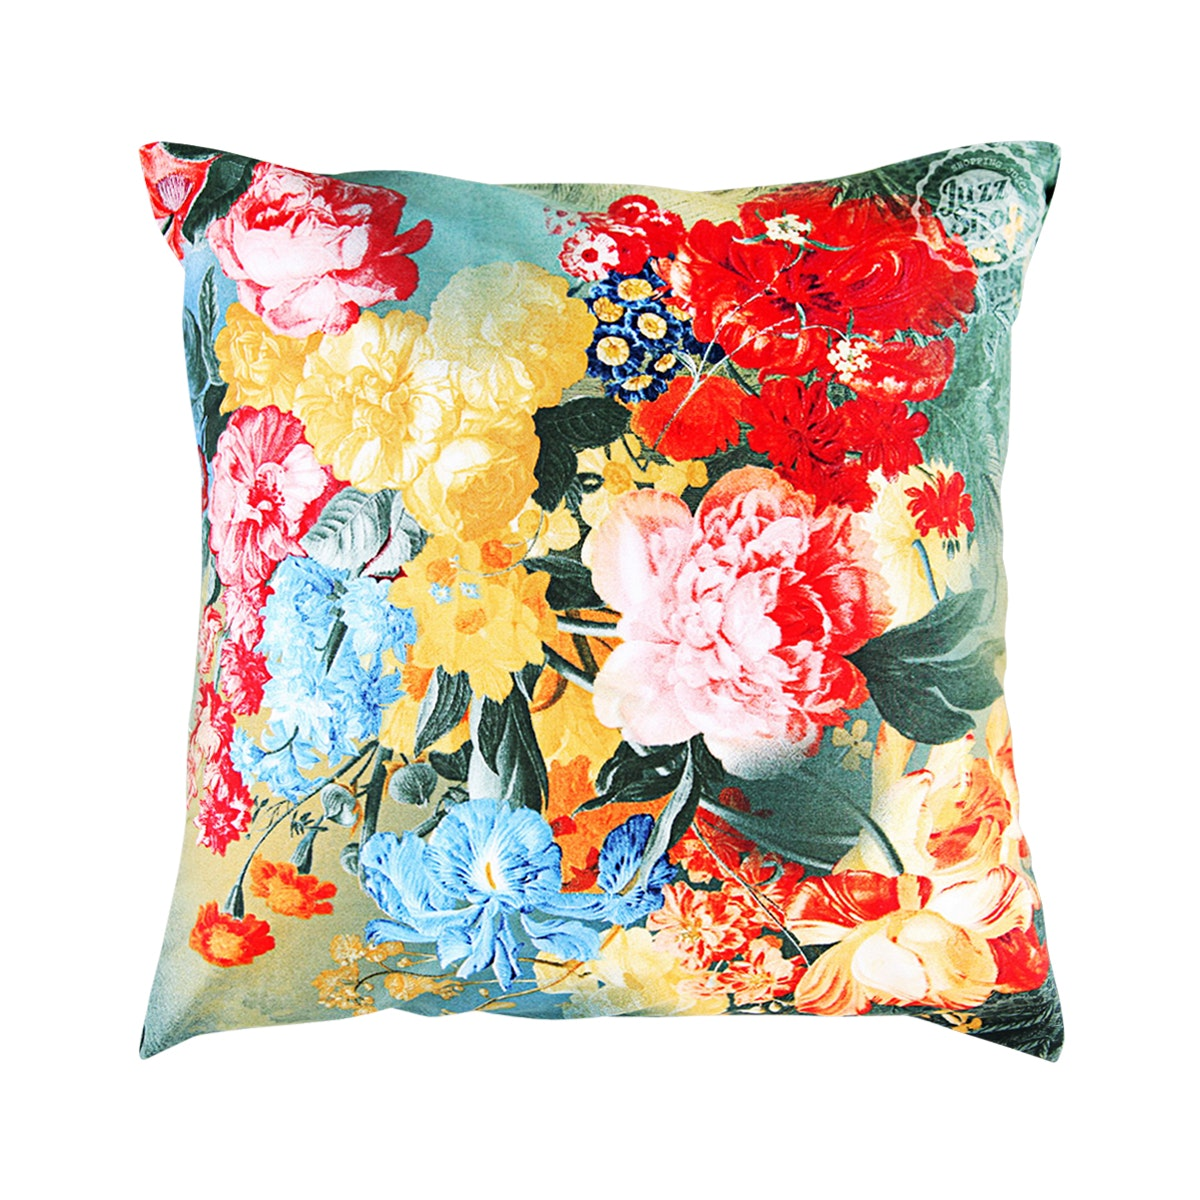 Eolins Cushion Cover Deluxe JSPS5006 50x50cm